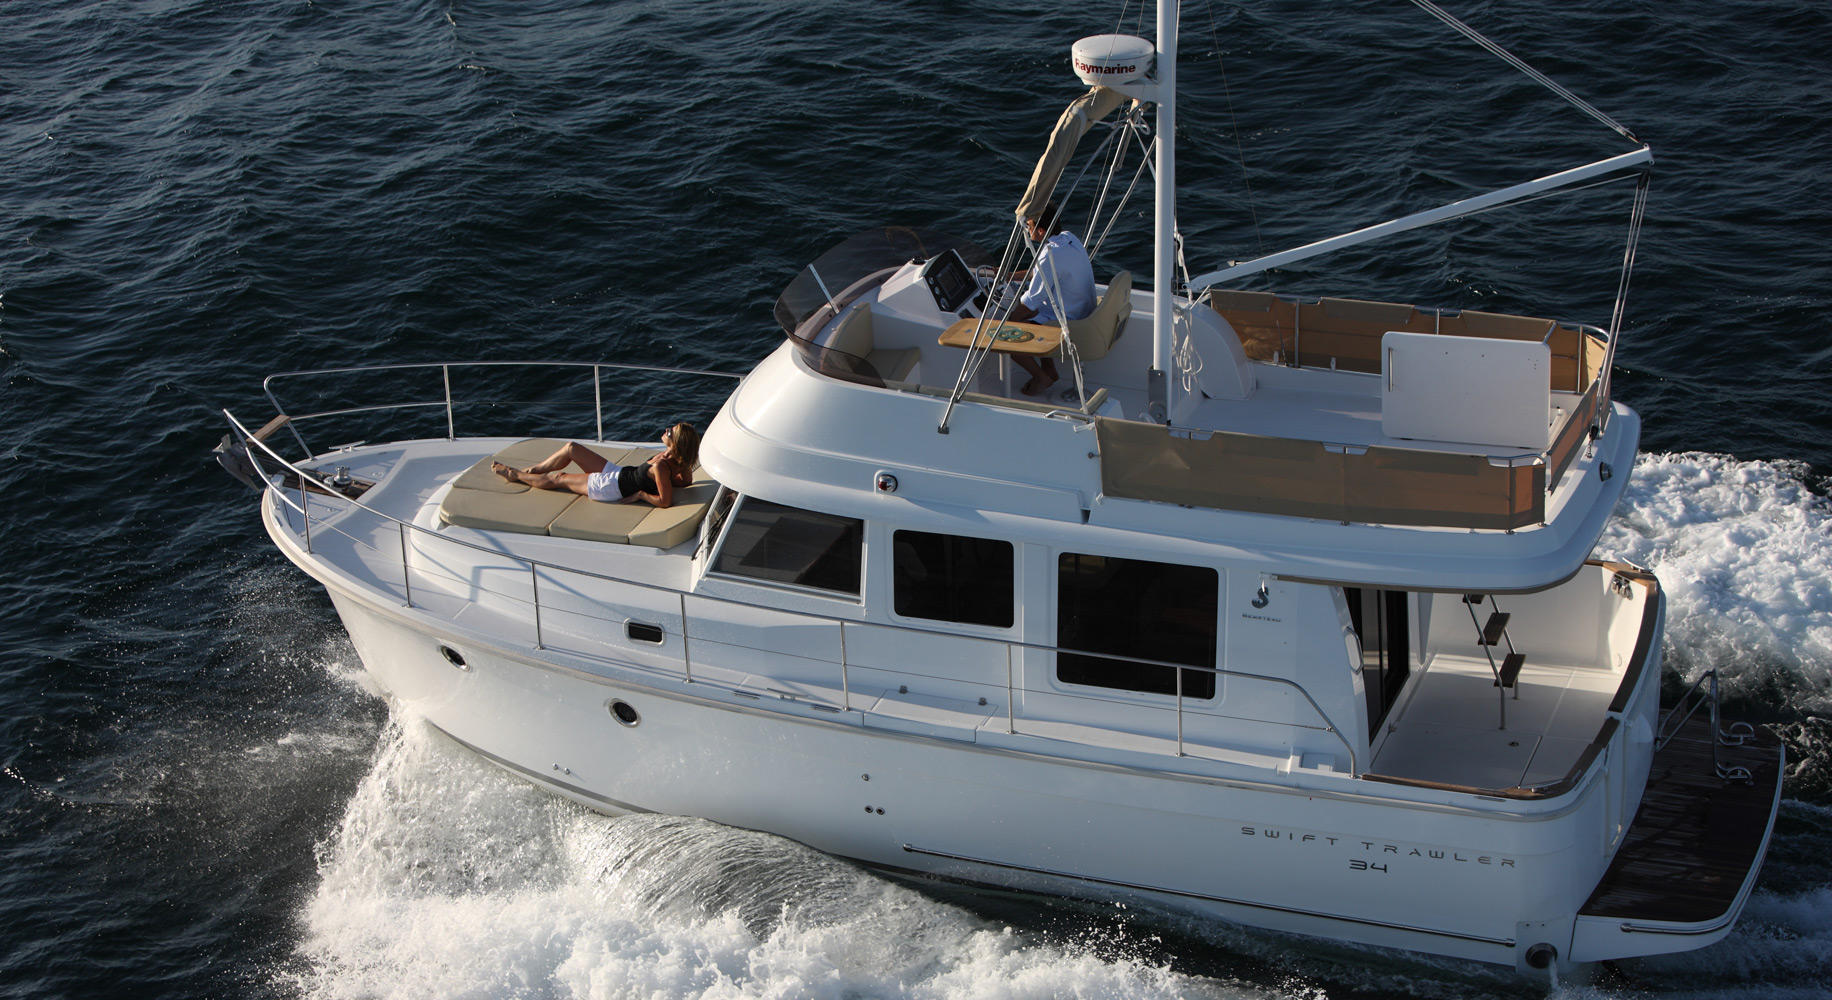 Swift Trawler 34 Navigation